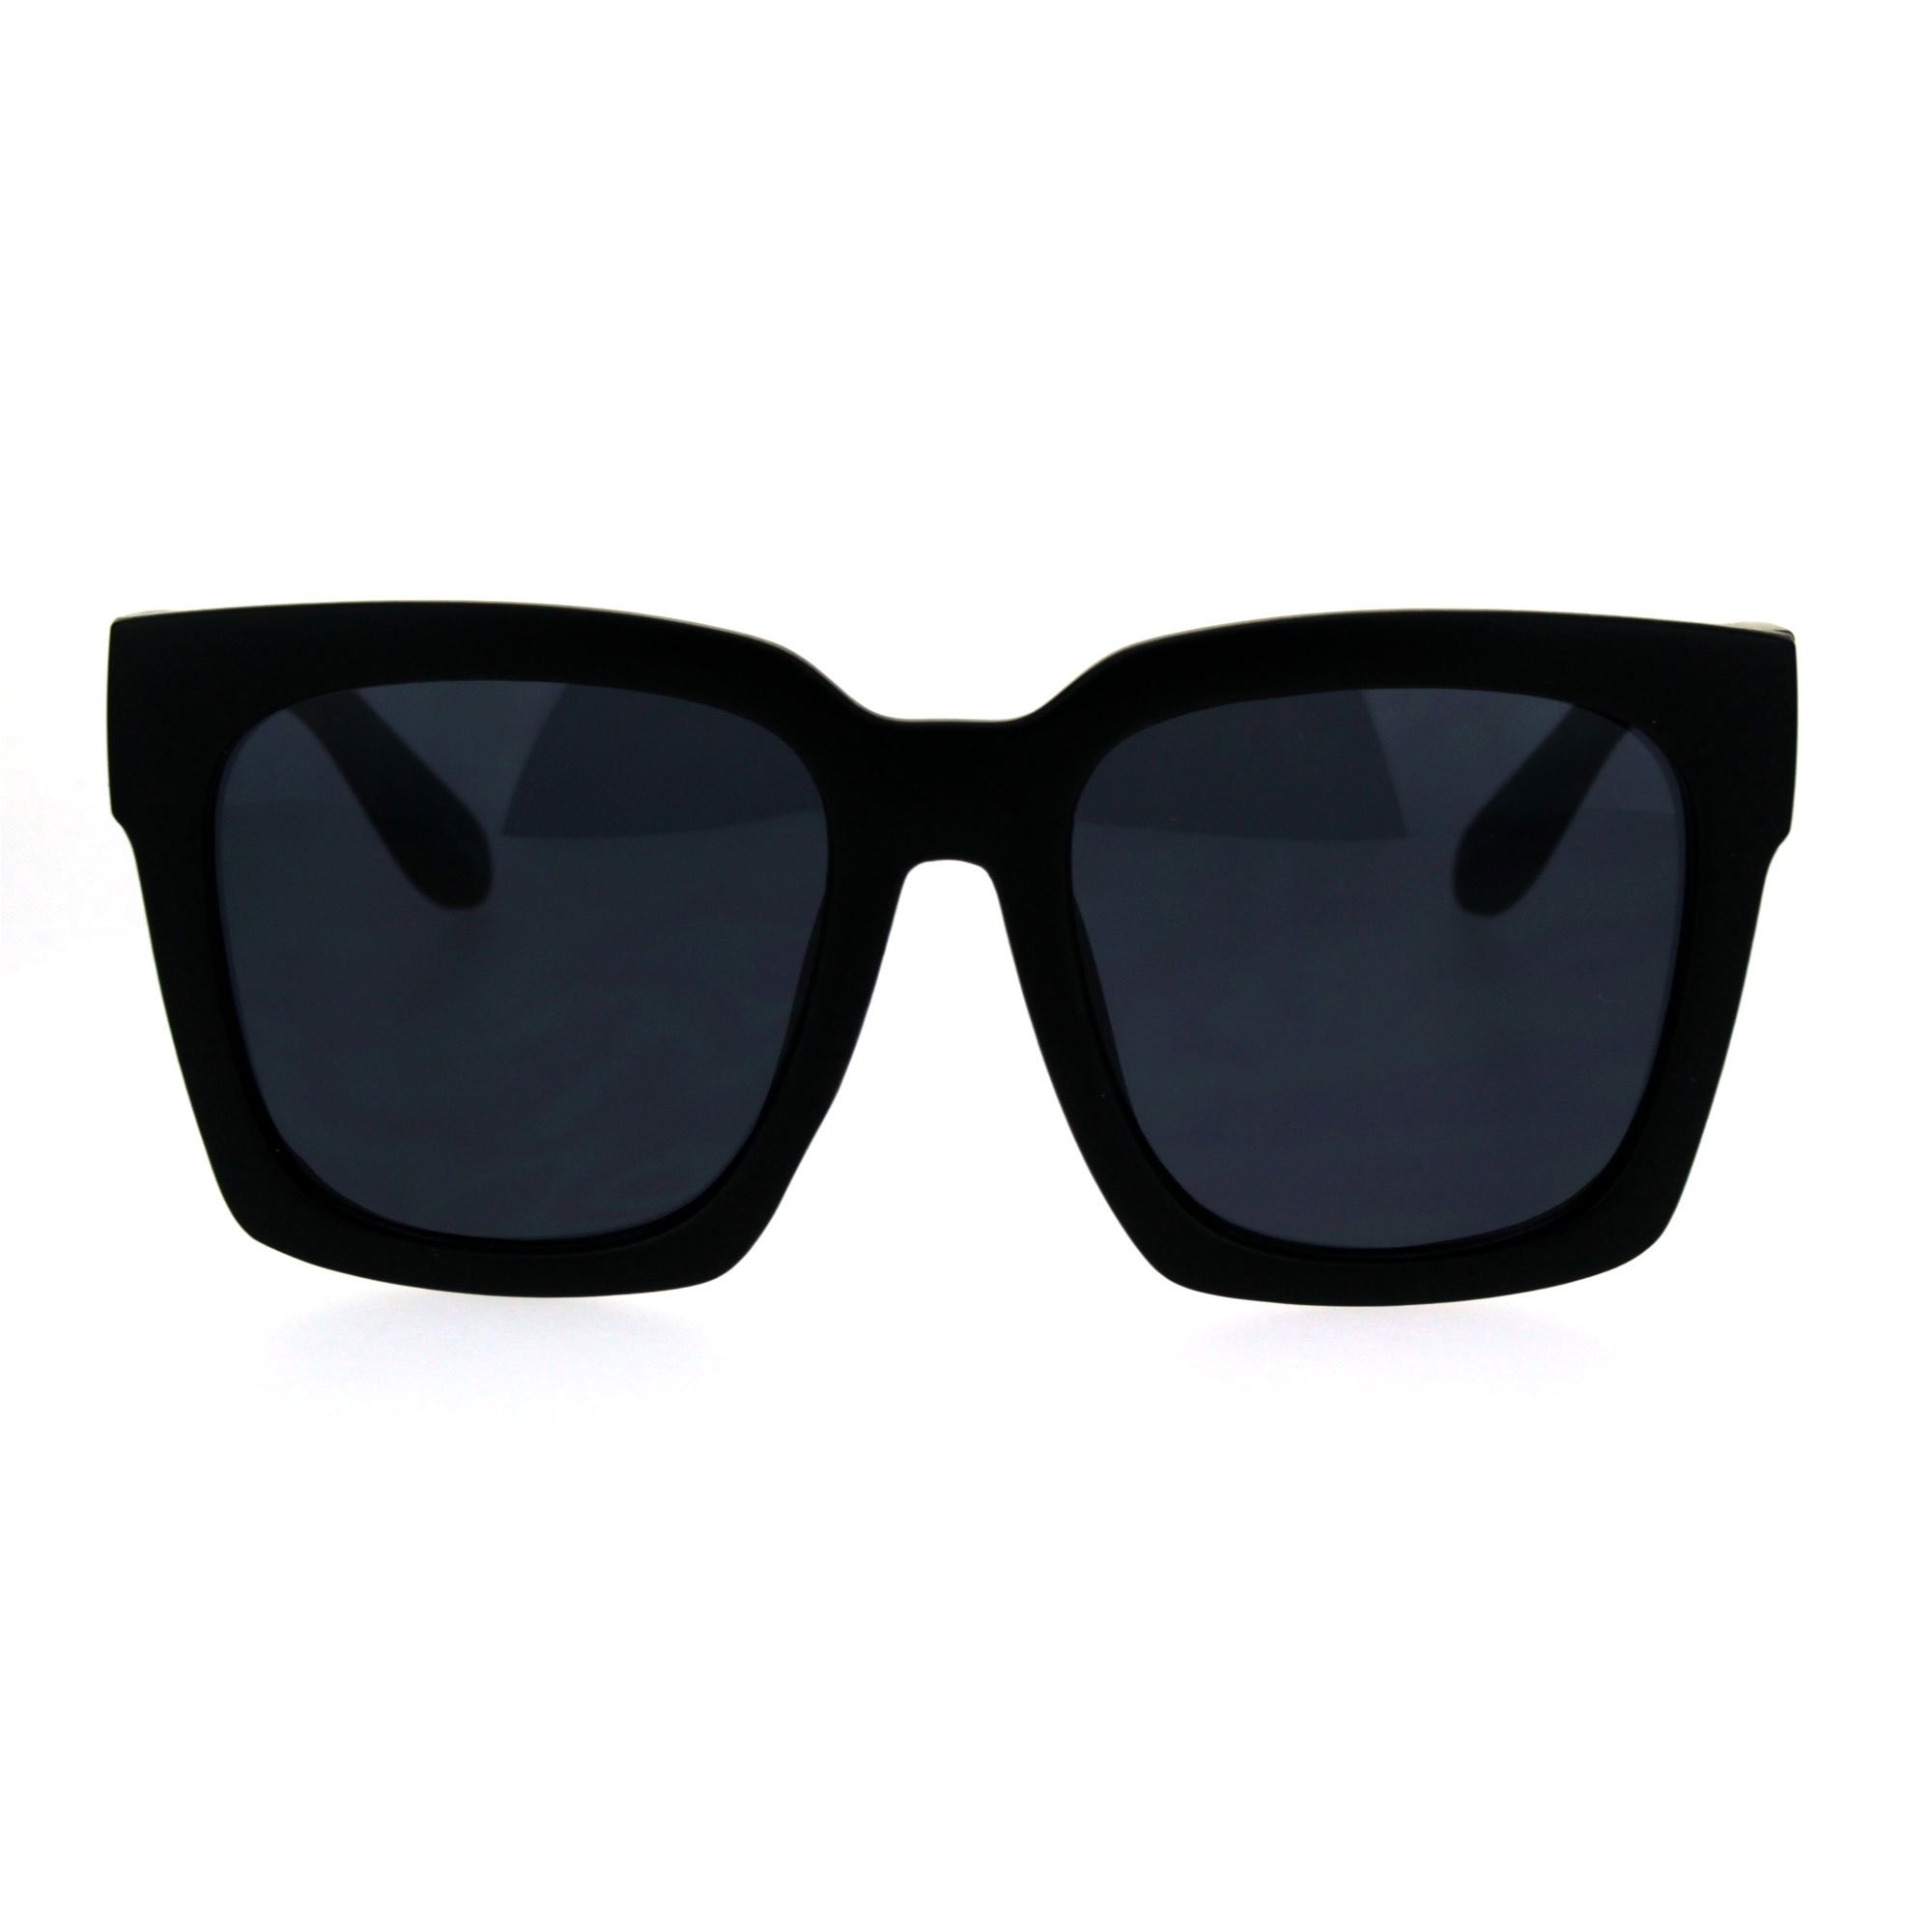 e35399b35 SUPER Oversized Square Sunglasses Womens - TiendaMIA.com